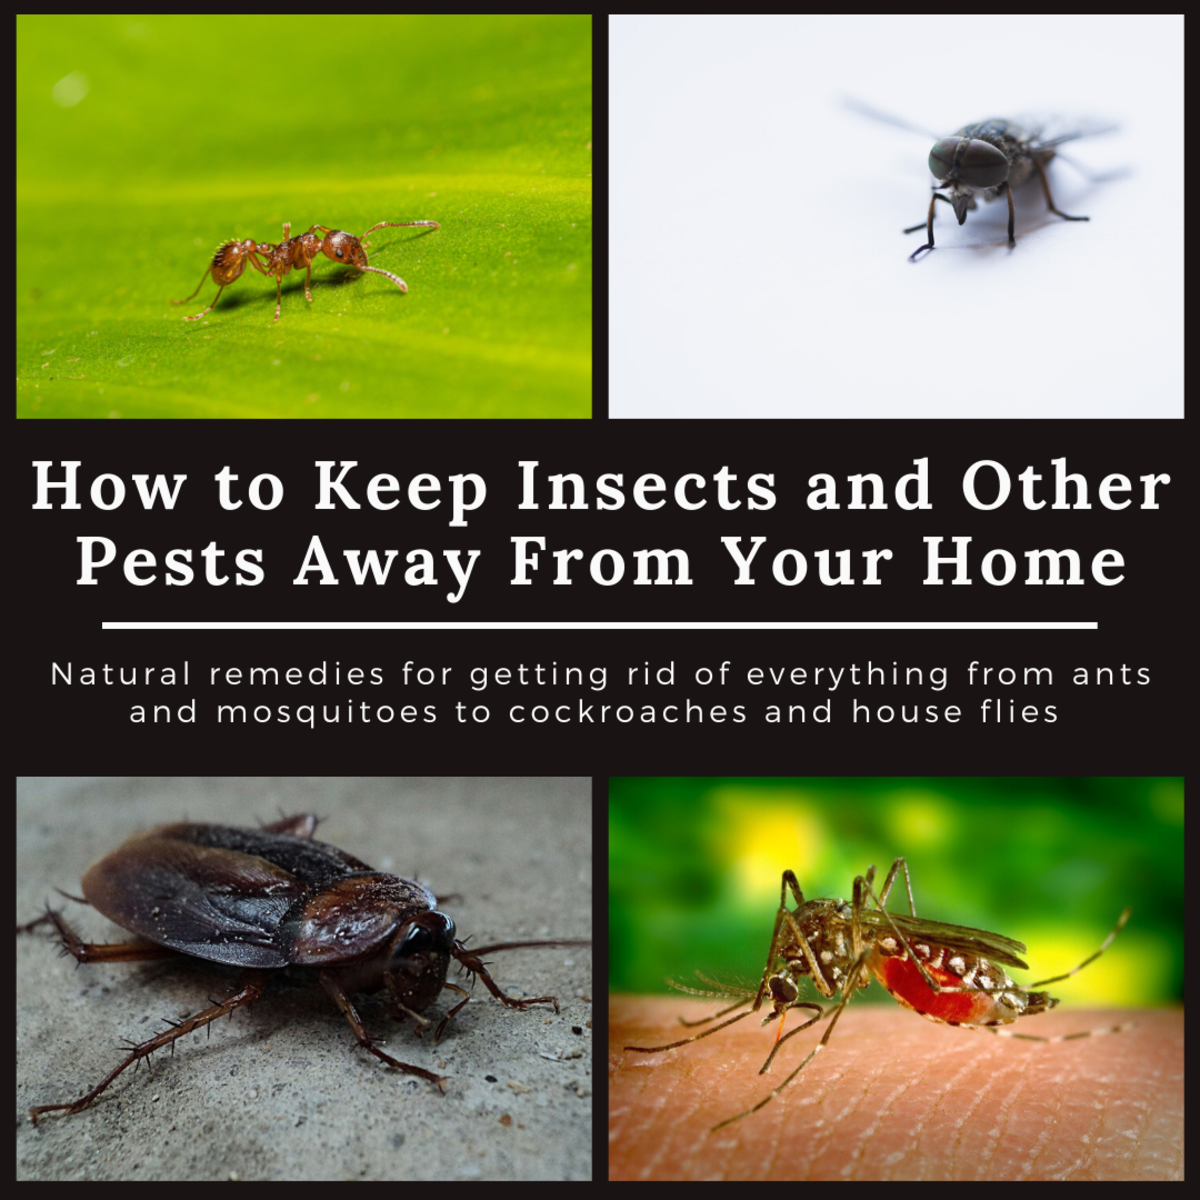 This guide will provide plenty of home remedies for getting rid of various insects and other pests.